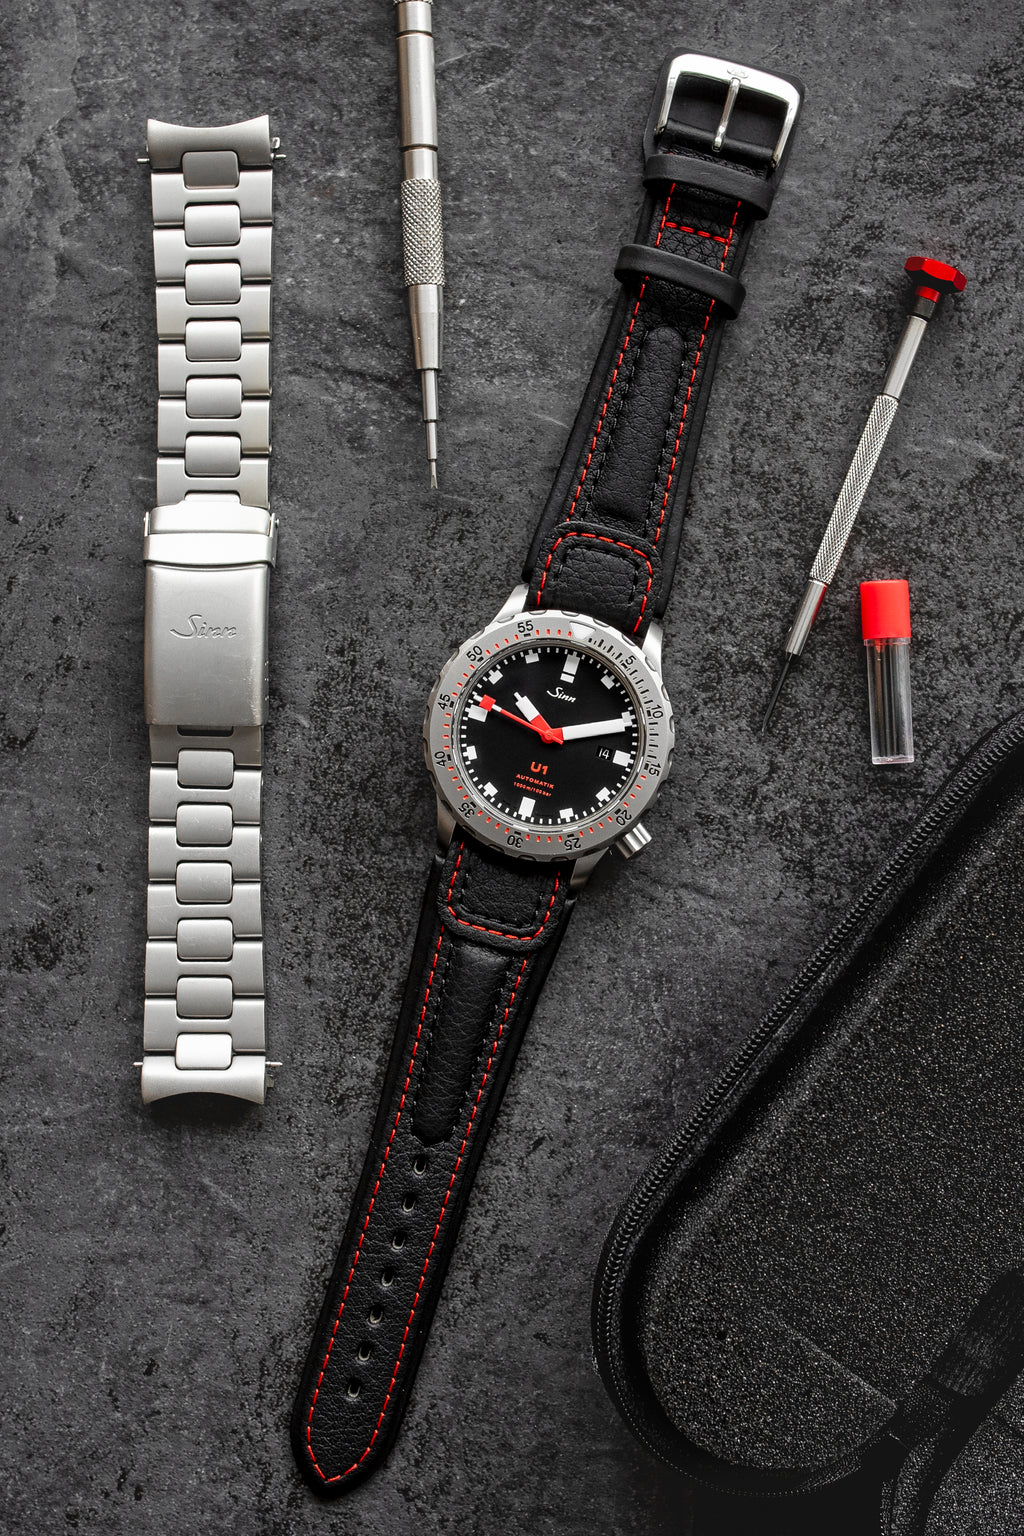 Di-Modell CHRONISSIMO Waterproof Leather Watch Strap in BLACK / RED